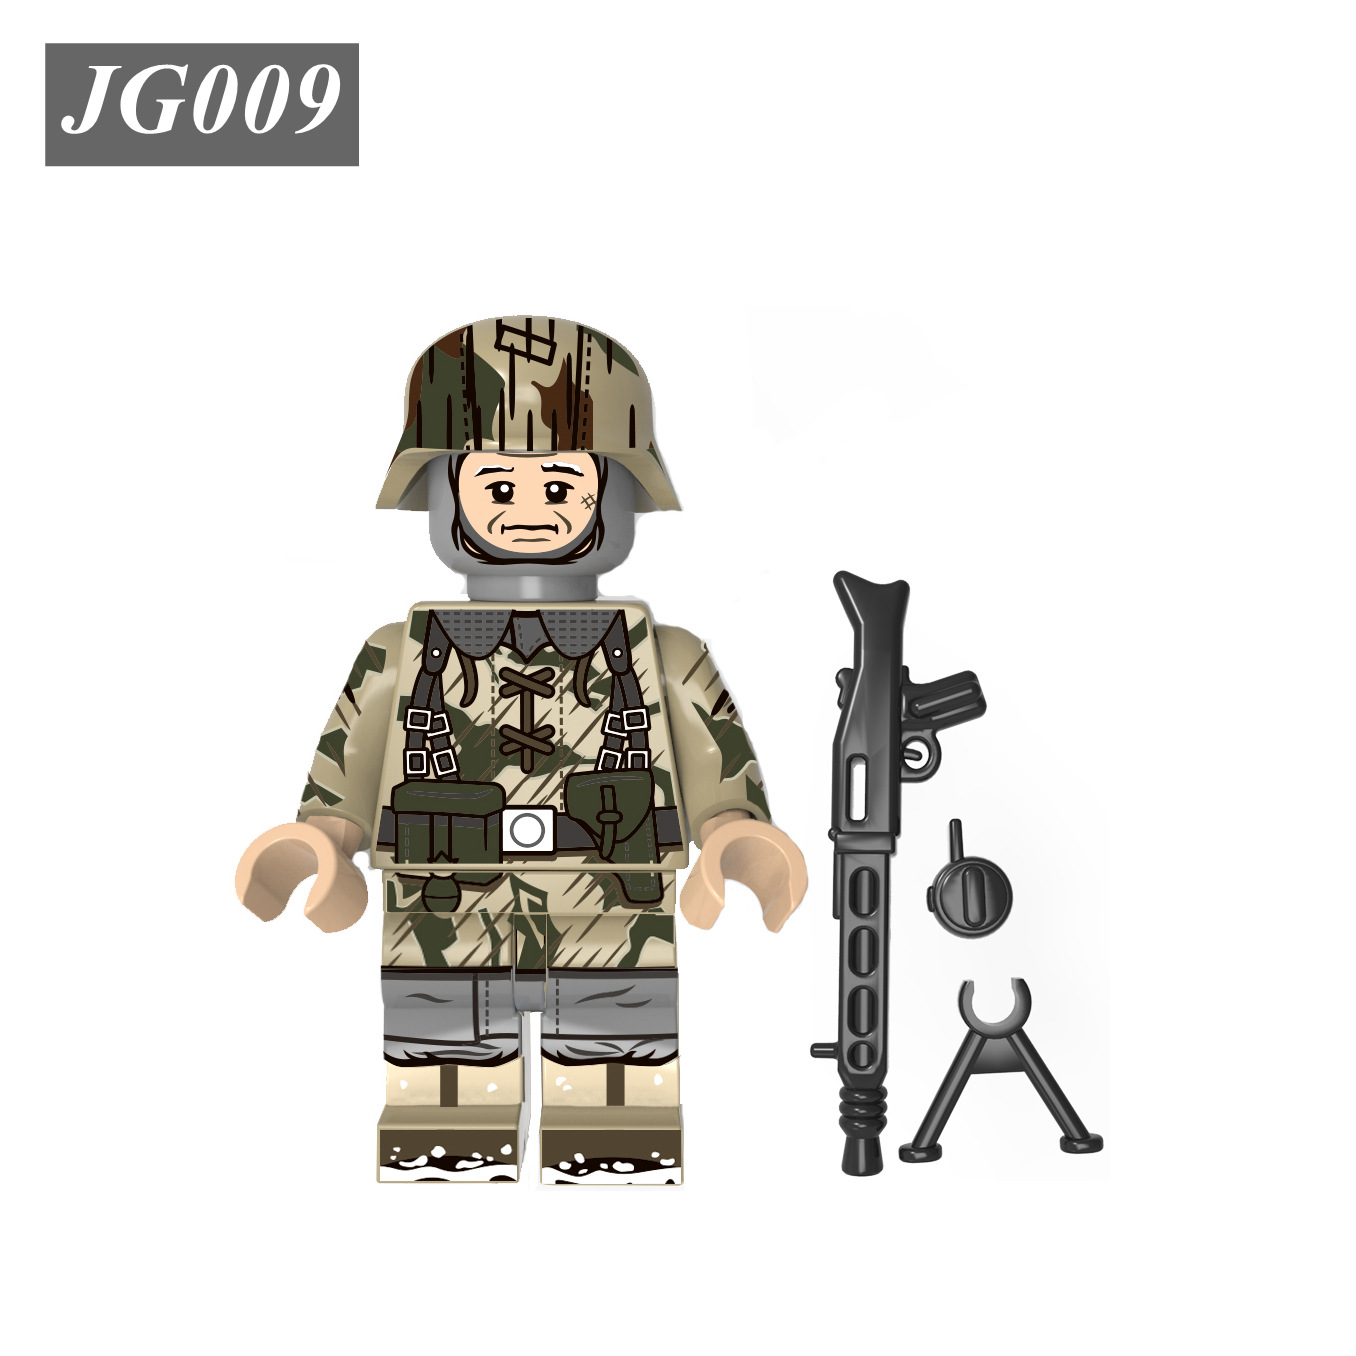 Lego Minifigures Soldier Jg008 Wwii German Winter Snow Camouflage Troops Building Blocks Toys